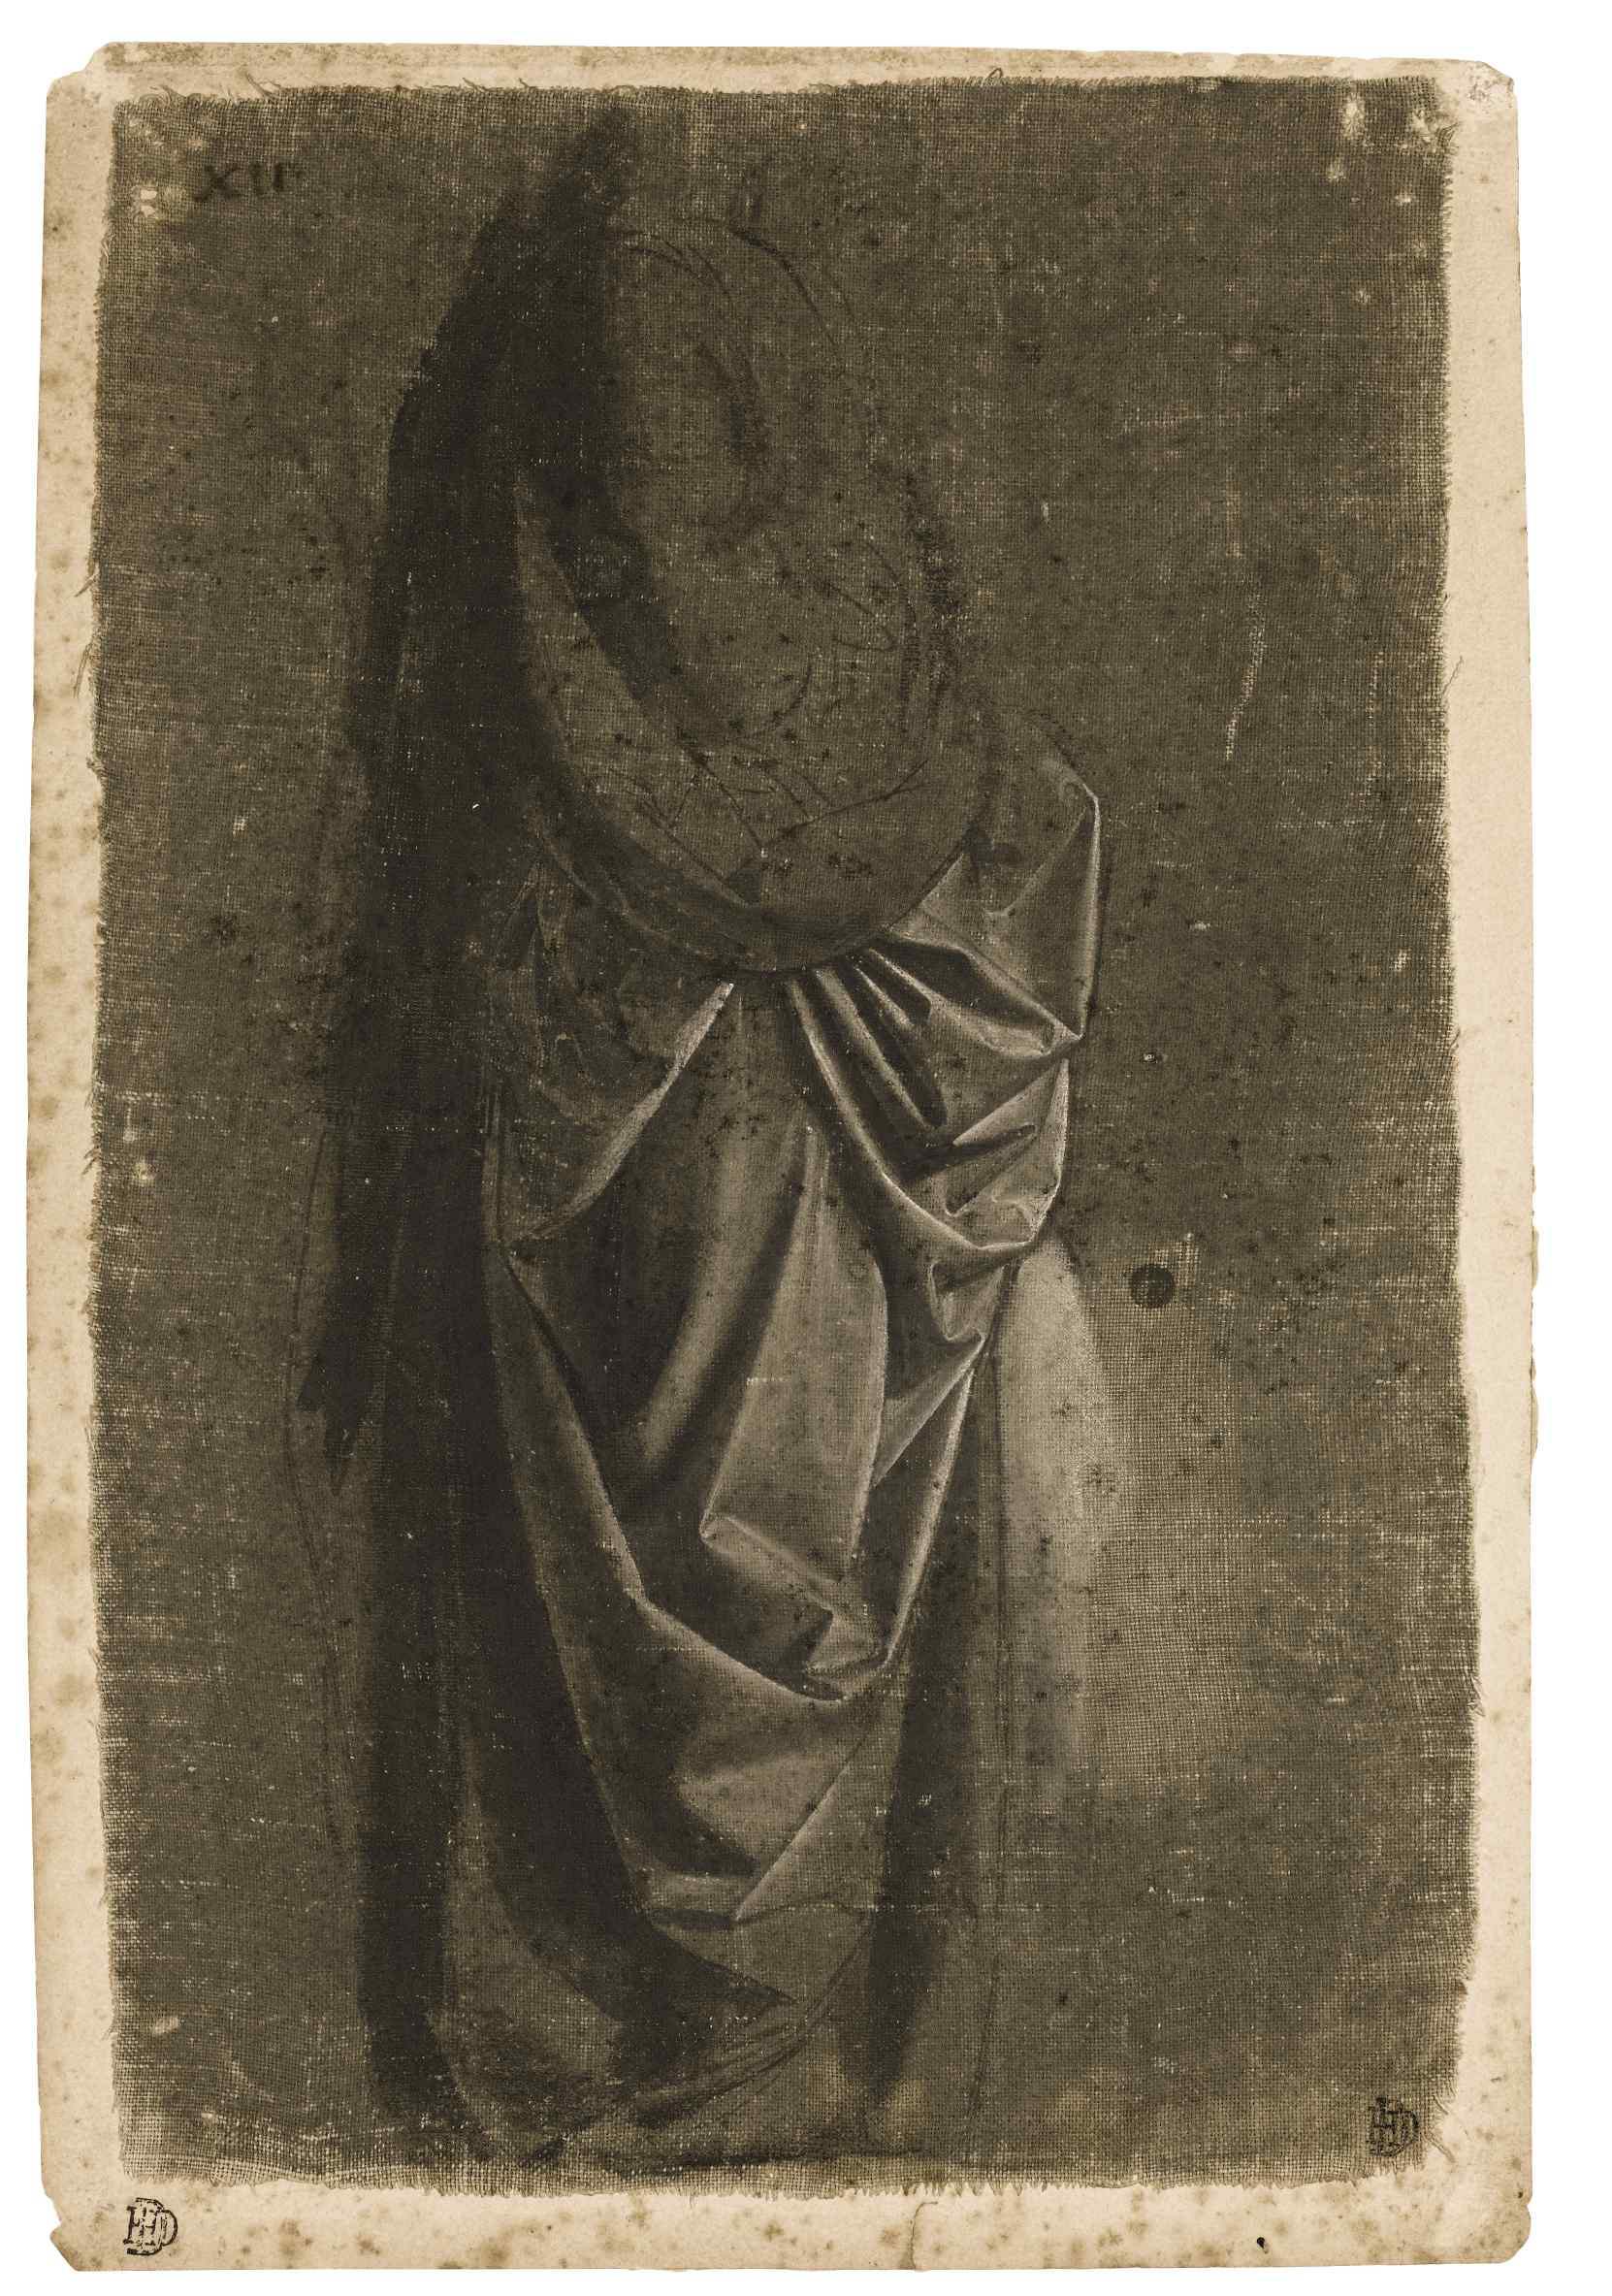 Workshop of Verrocchio - Drapery Study of a figure facing right